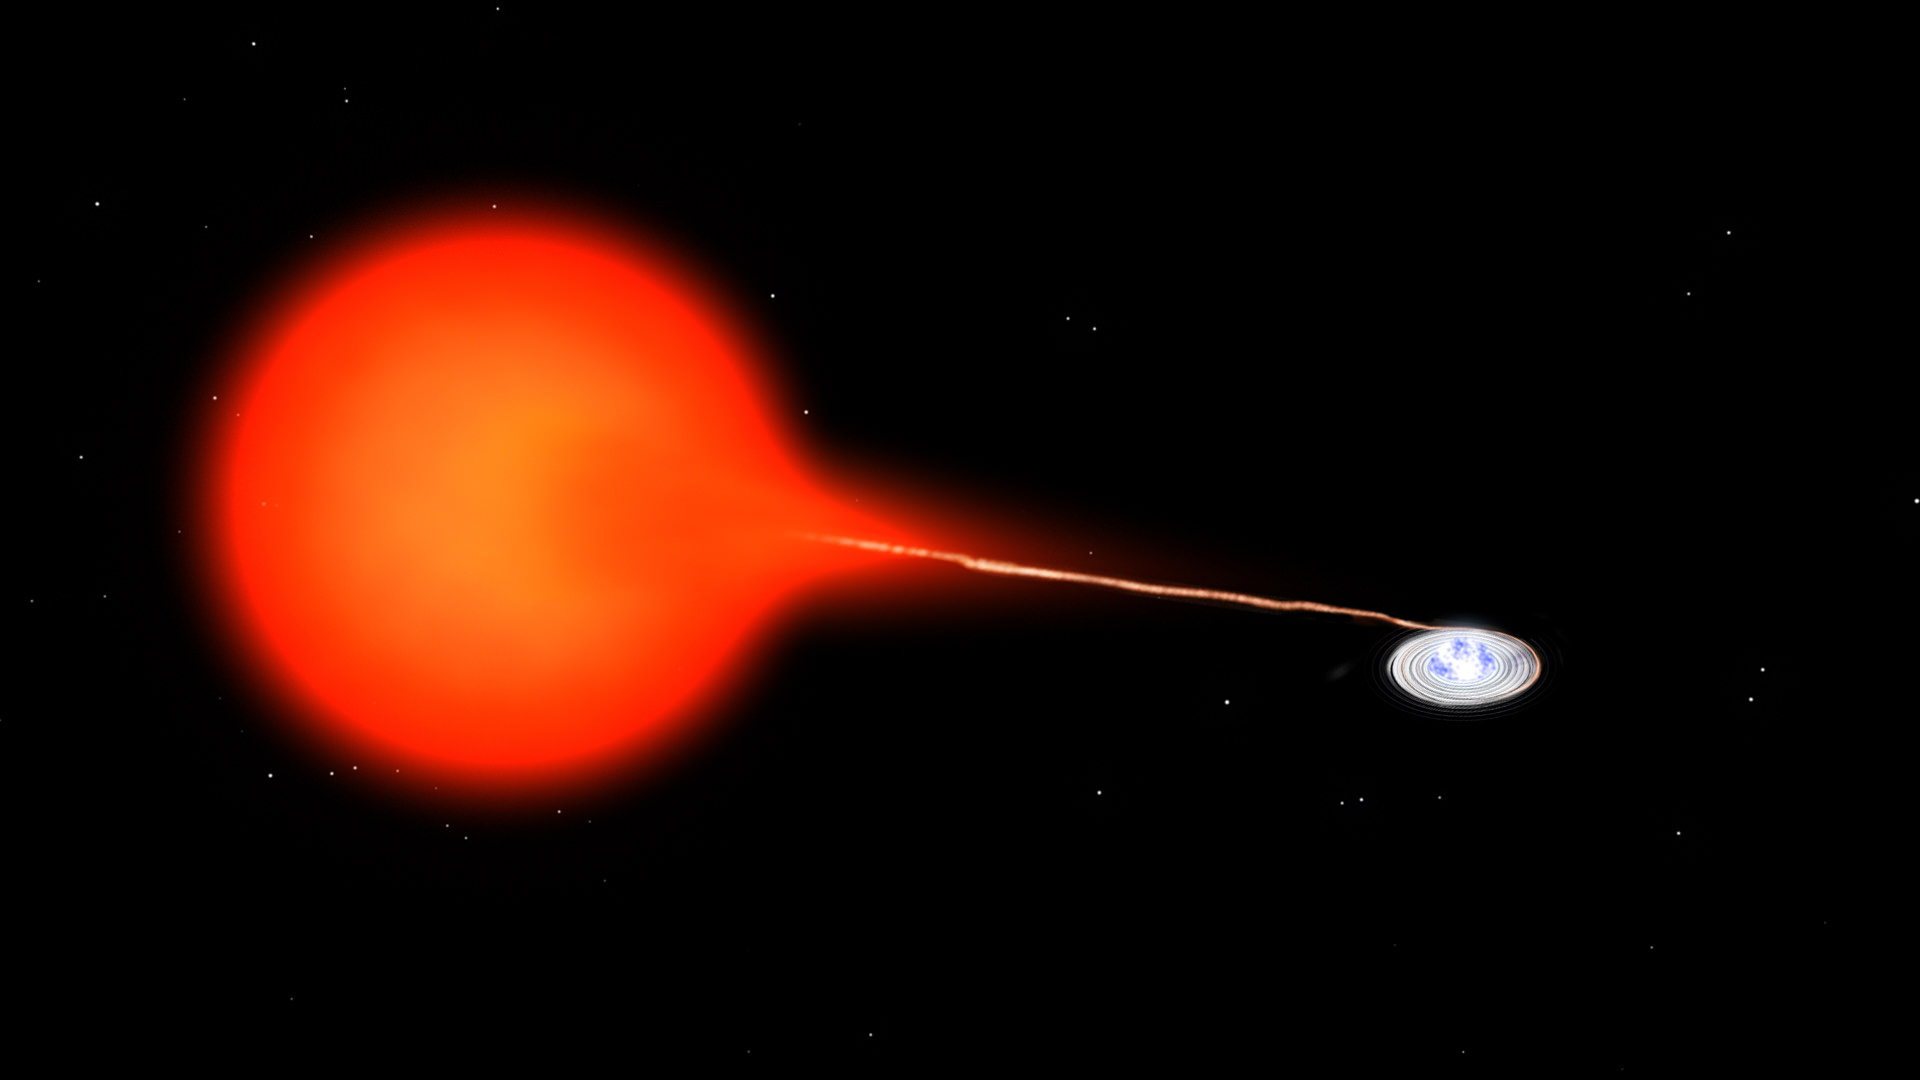 An artist's conception of the SS Cygni system, with a red dwarf star's material being pulled on to a nearby white dwarf. Credit: Bill Saxton, NRAO/AUI/NSF